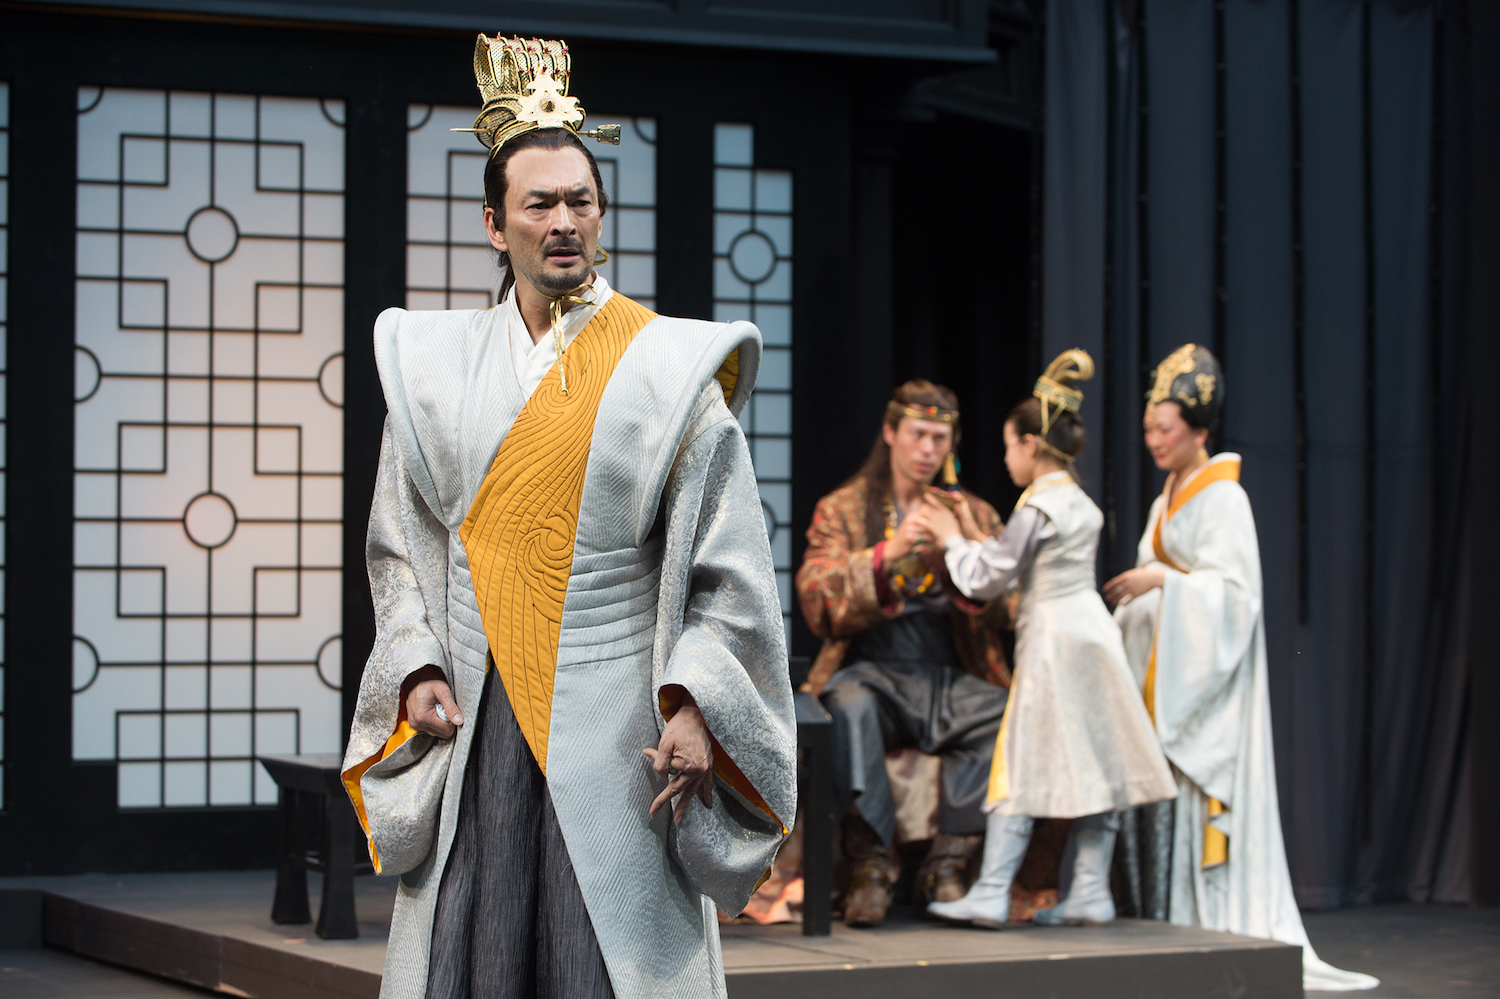 eontes (Eric Steinberg) is tortured by jealous thoughts as his friend Polixenes (James Ryen), son Mamillius (Naomi Nelson) and wife Hermione (Amy Kim Waschke) play in the background. Photo by Jenny Graham, Oregon Shakespeare Festival.